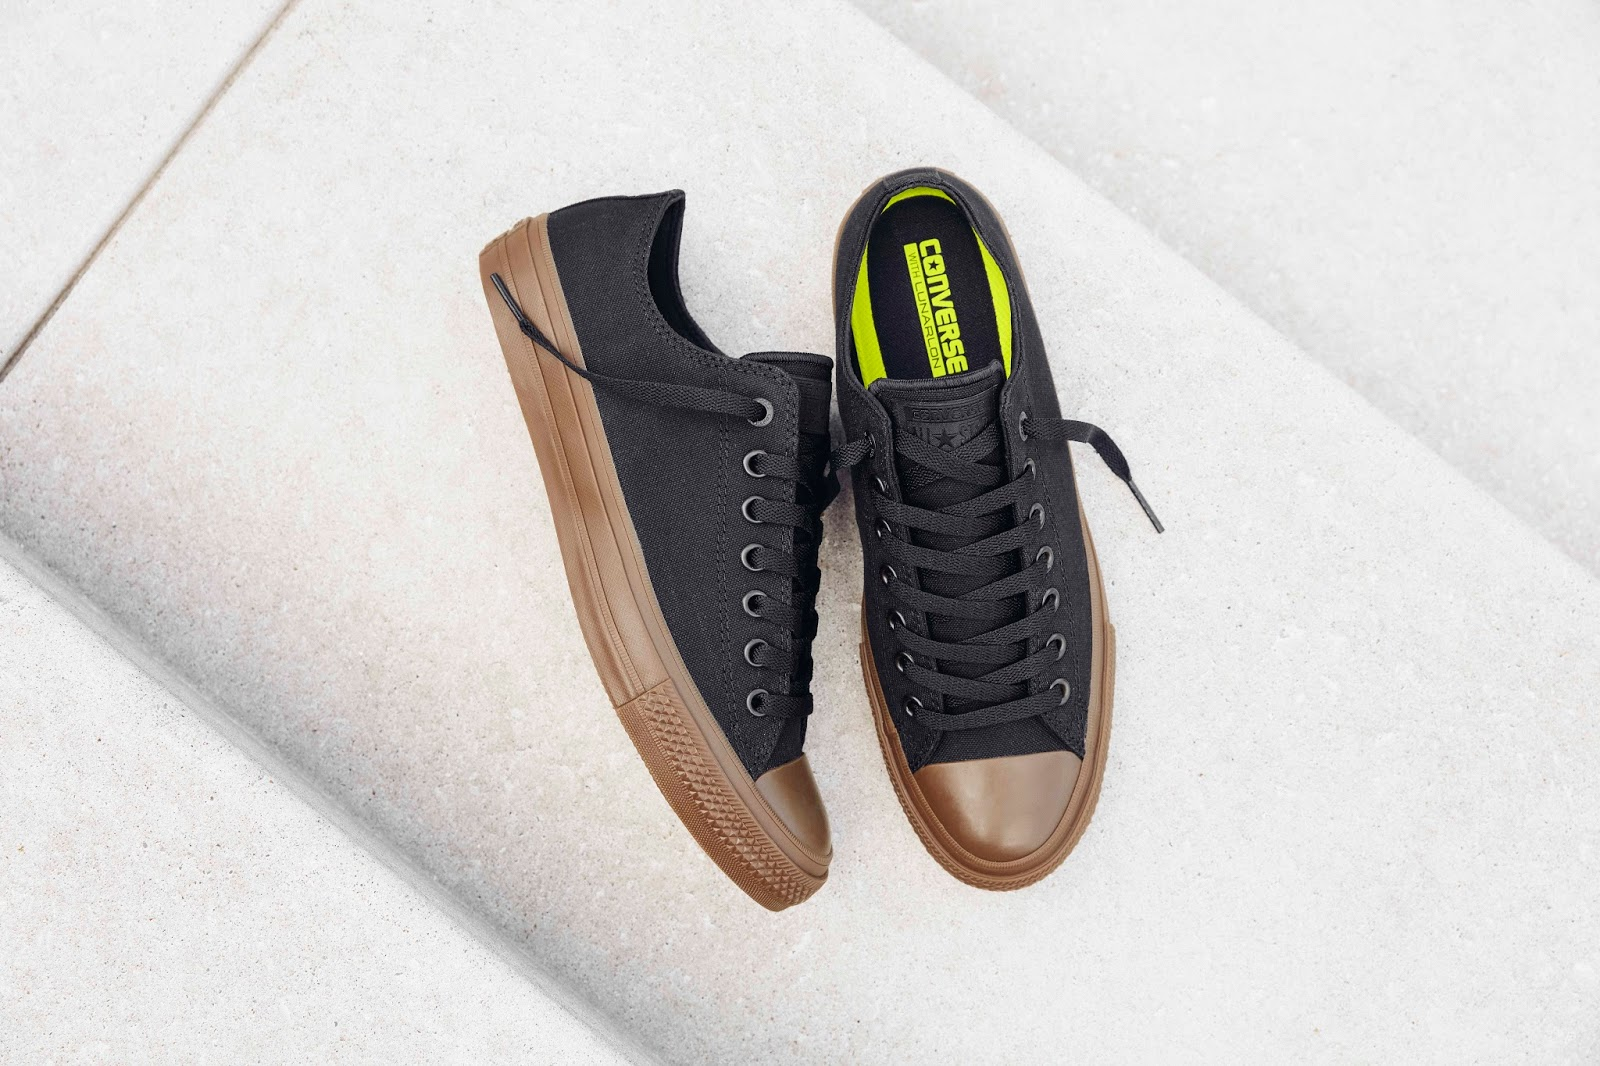 Converse Spring Summer 2017 Sneaker Collection Randomly Candid Ct Ii Low Chuck Taylor All Star Gum A Twist On Classic Comfort